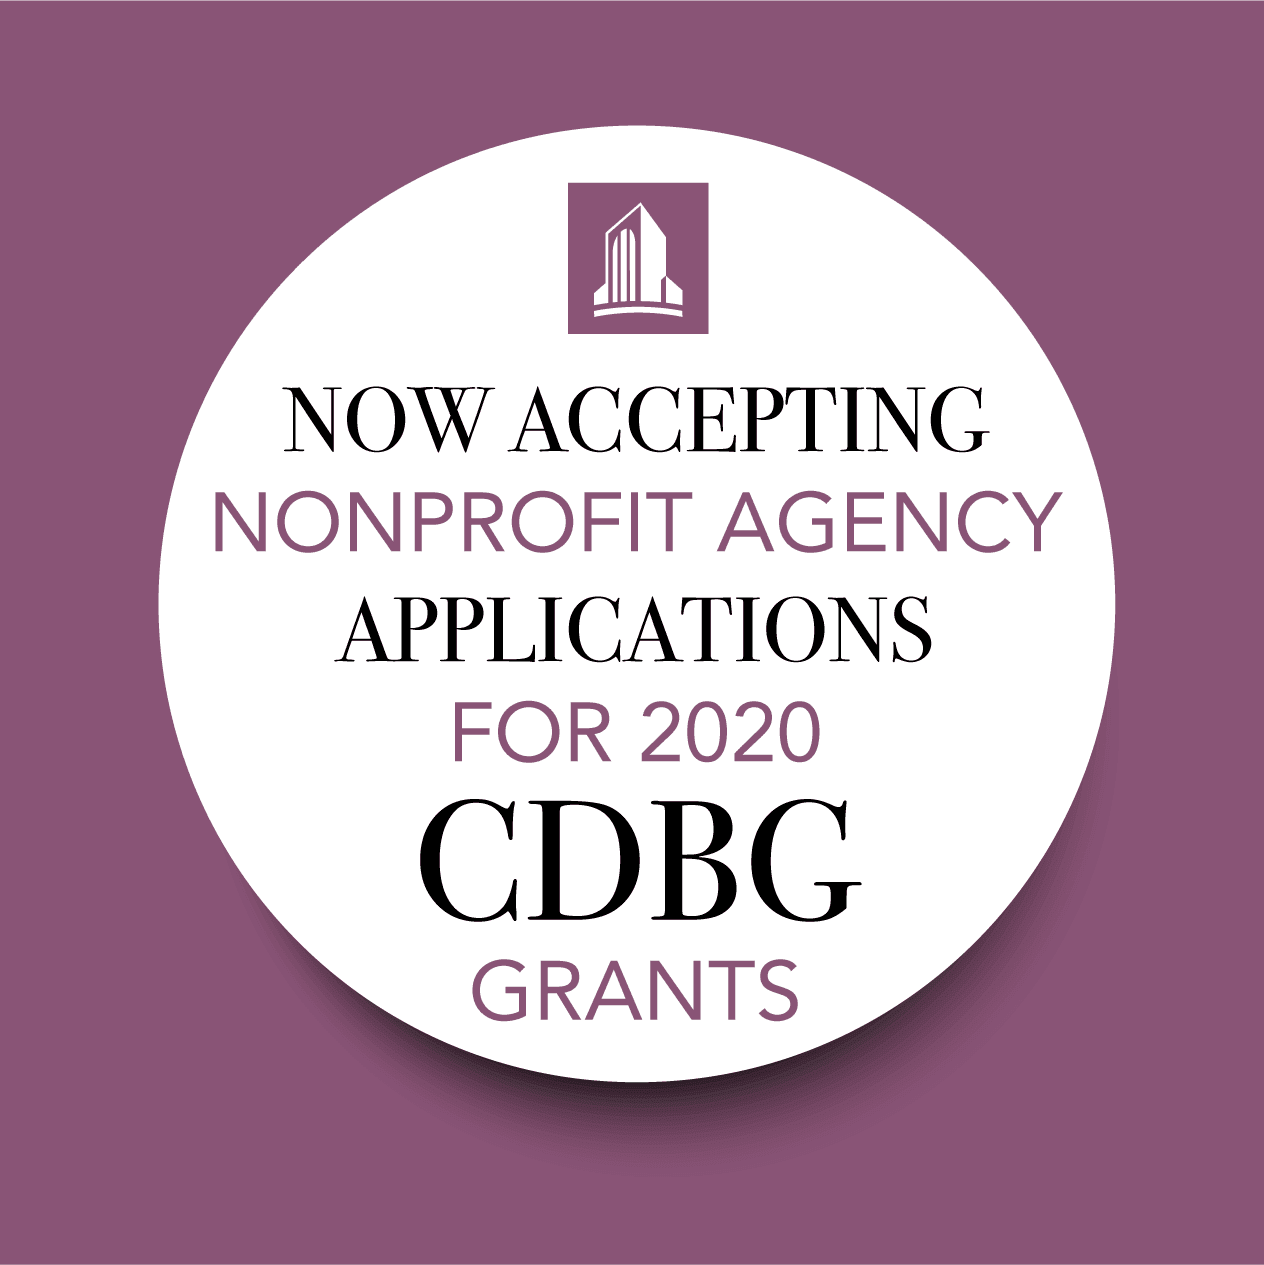 cdbg 2020 applications being accepted